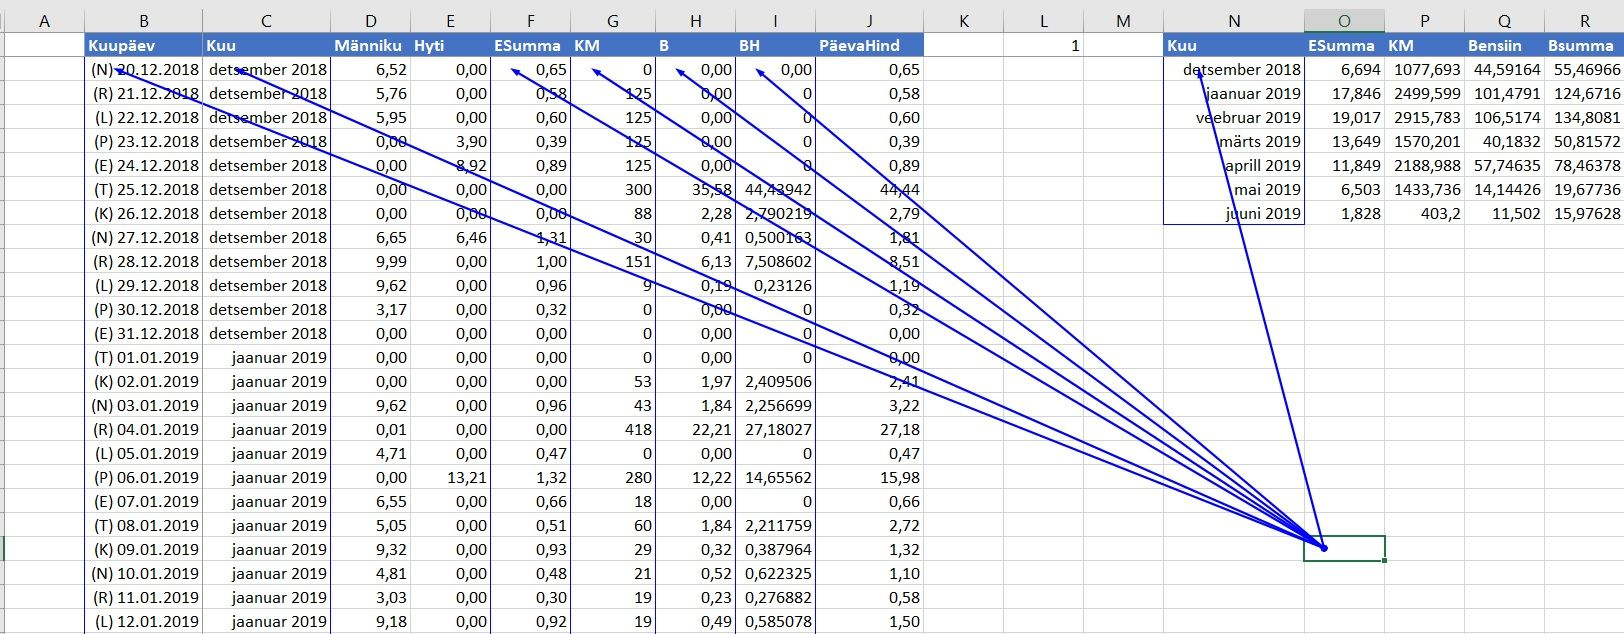 Preview of Dynamic Arrays in Excel - Microsoft Tech